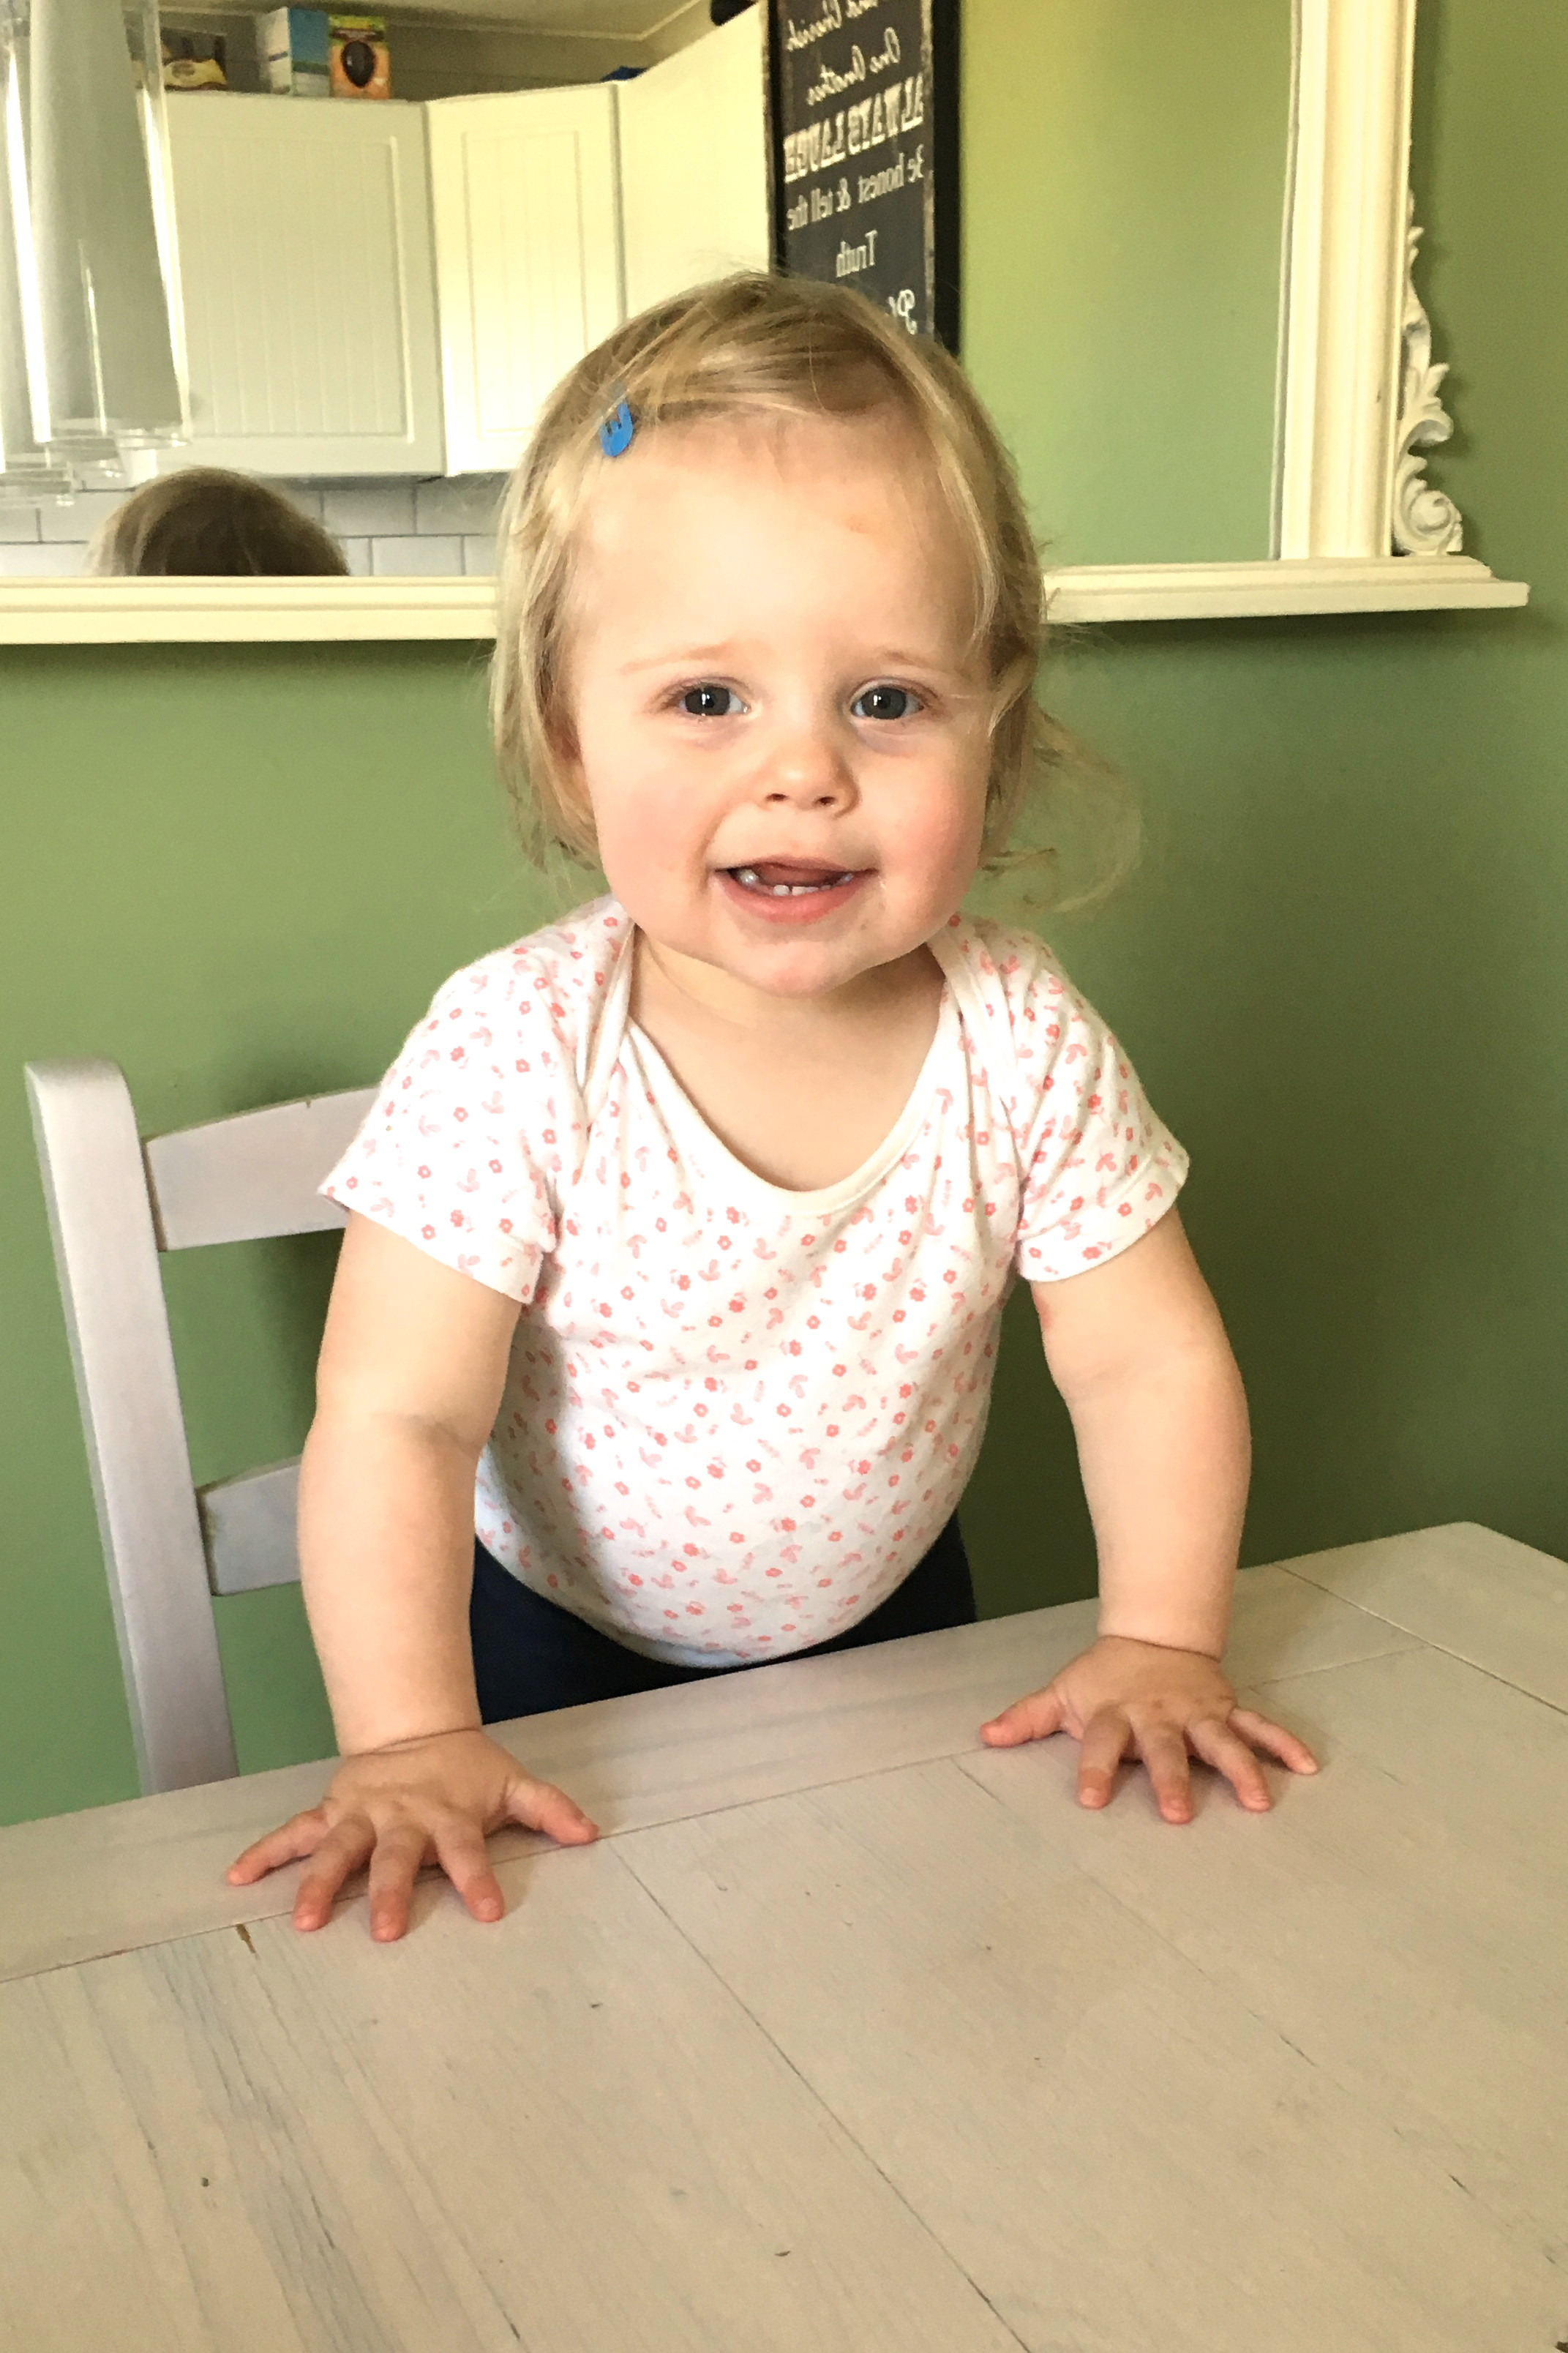 14 months old girl standing on dining room chair, leaning on table